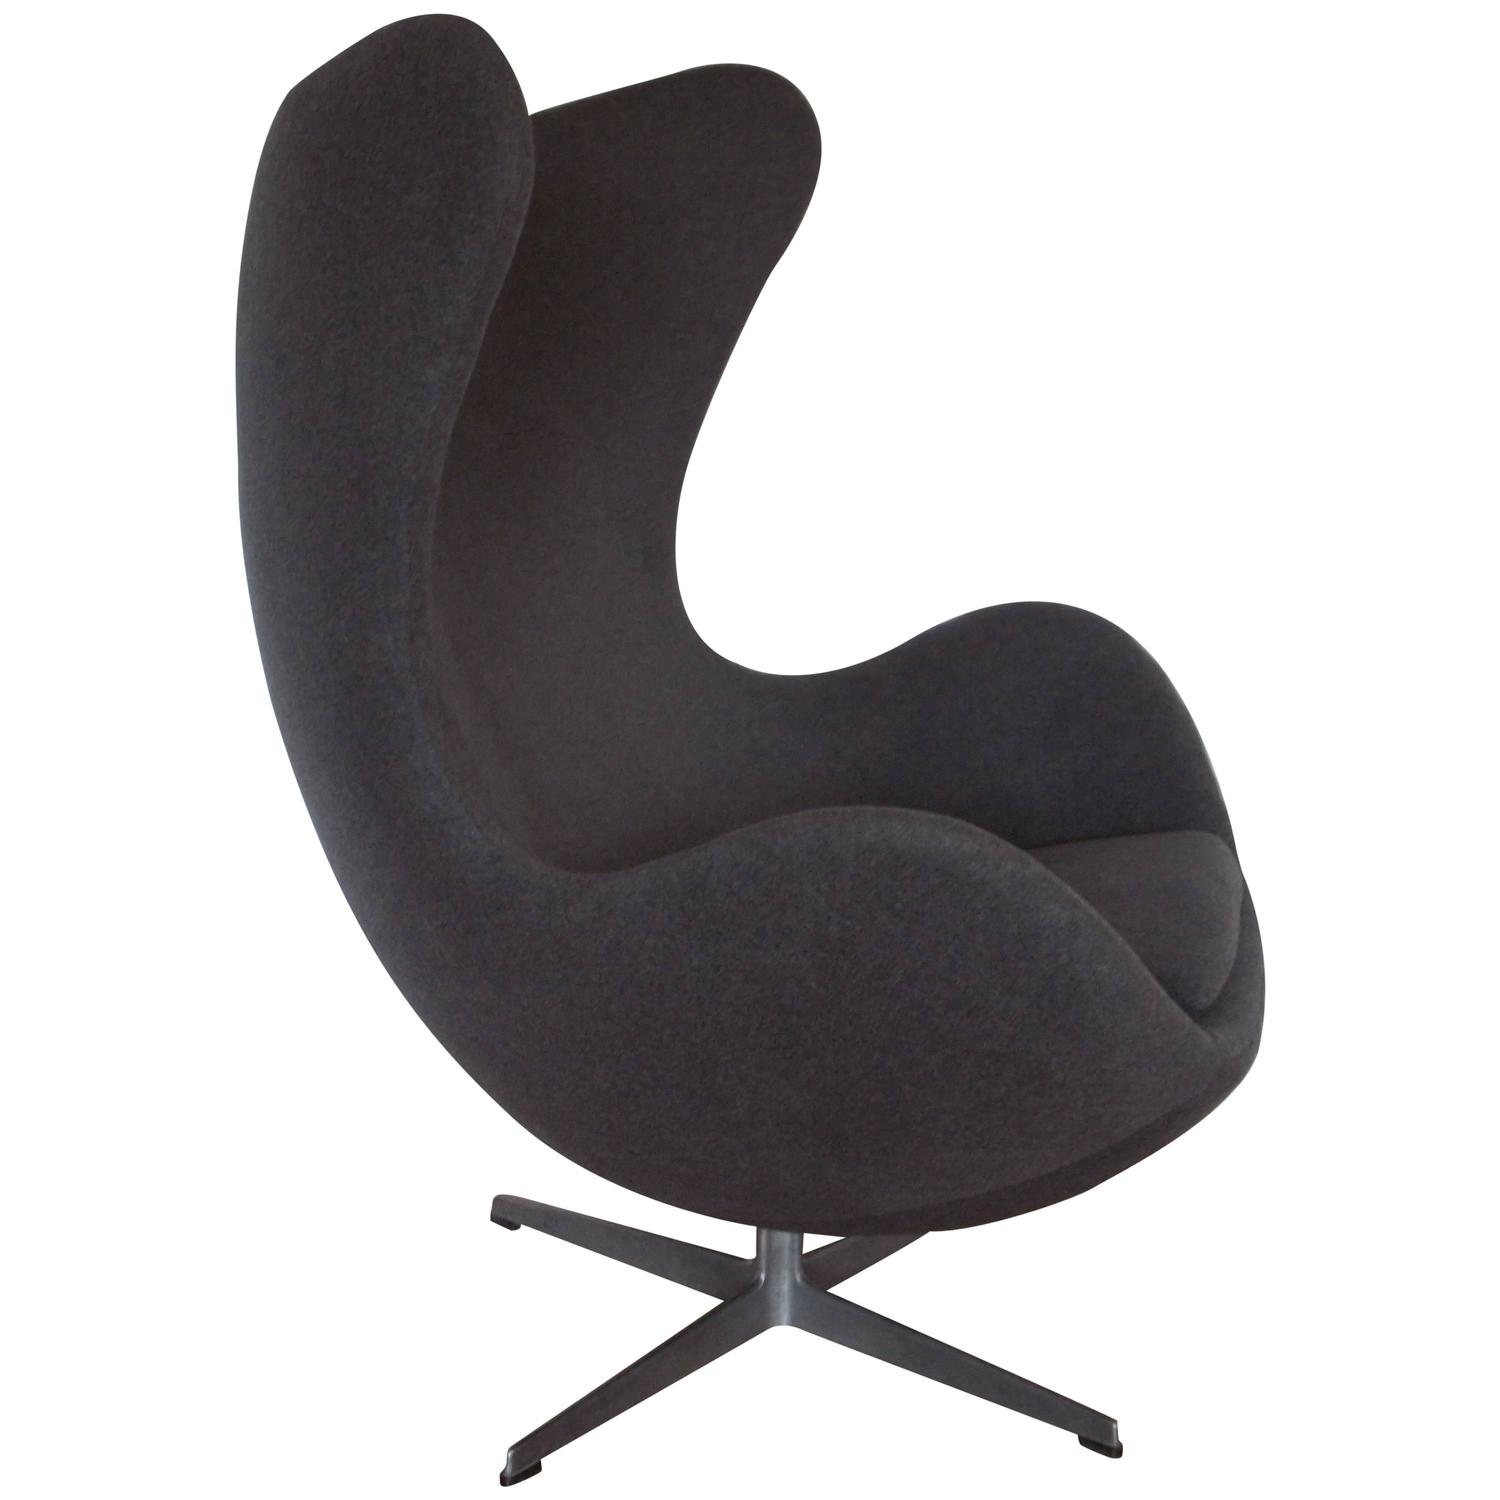 original vintage arne jacobsen egg chair for fritz hansen. Black Bedroom Furniture Sets. Home Design Ideas